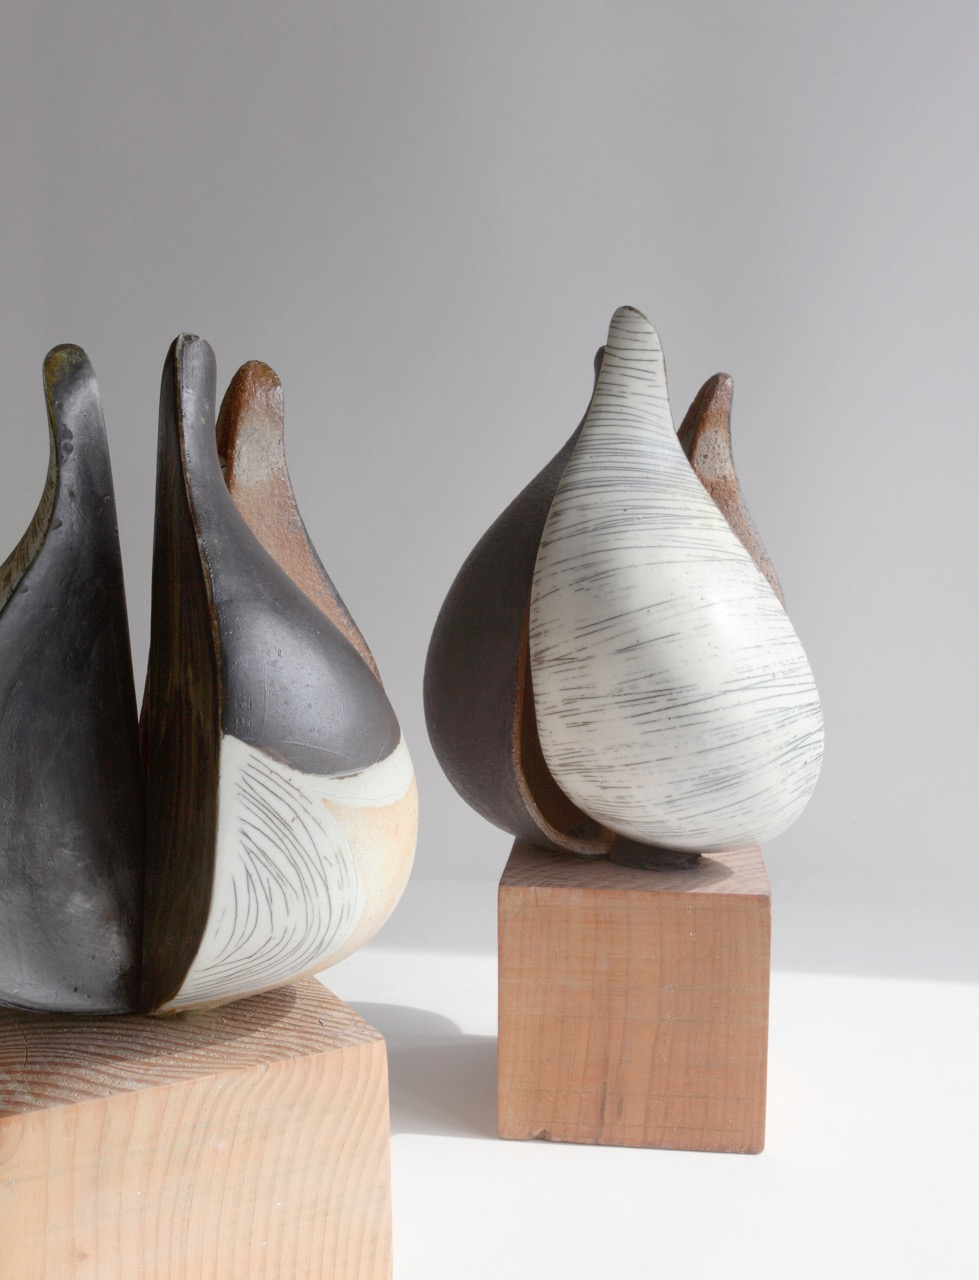 contemporary ceramics, ceramics sheffield, ceramic seed pods